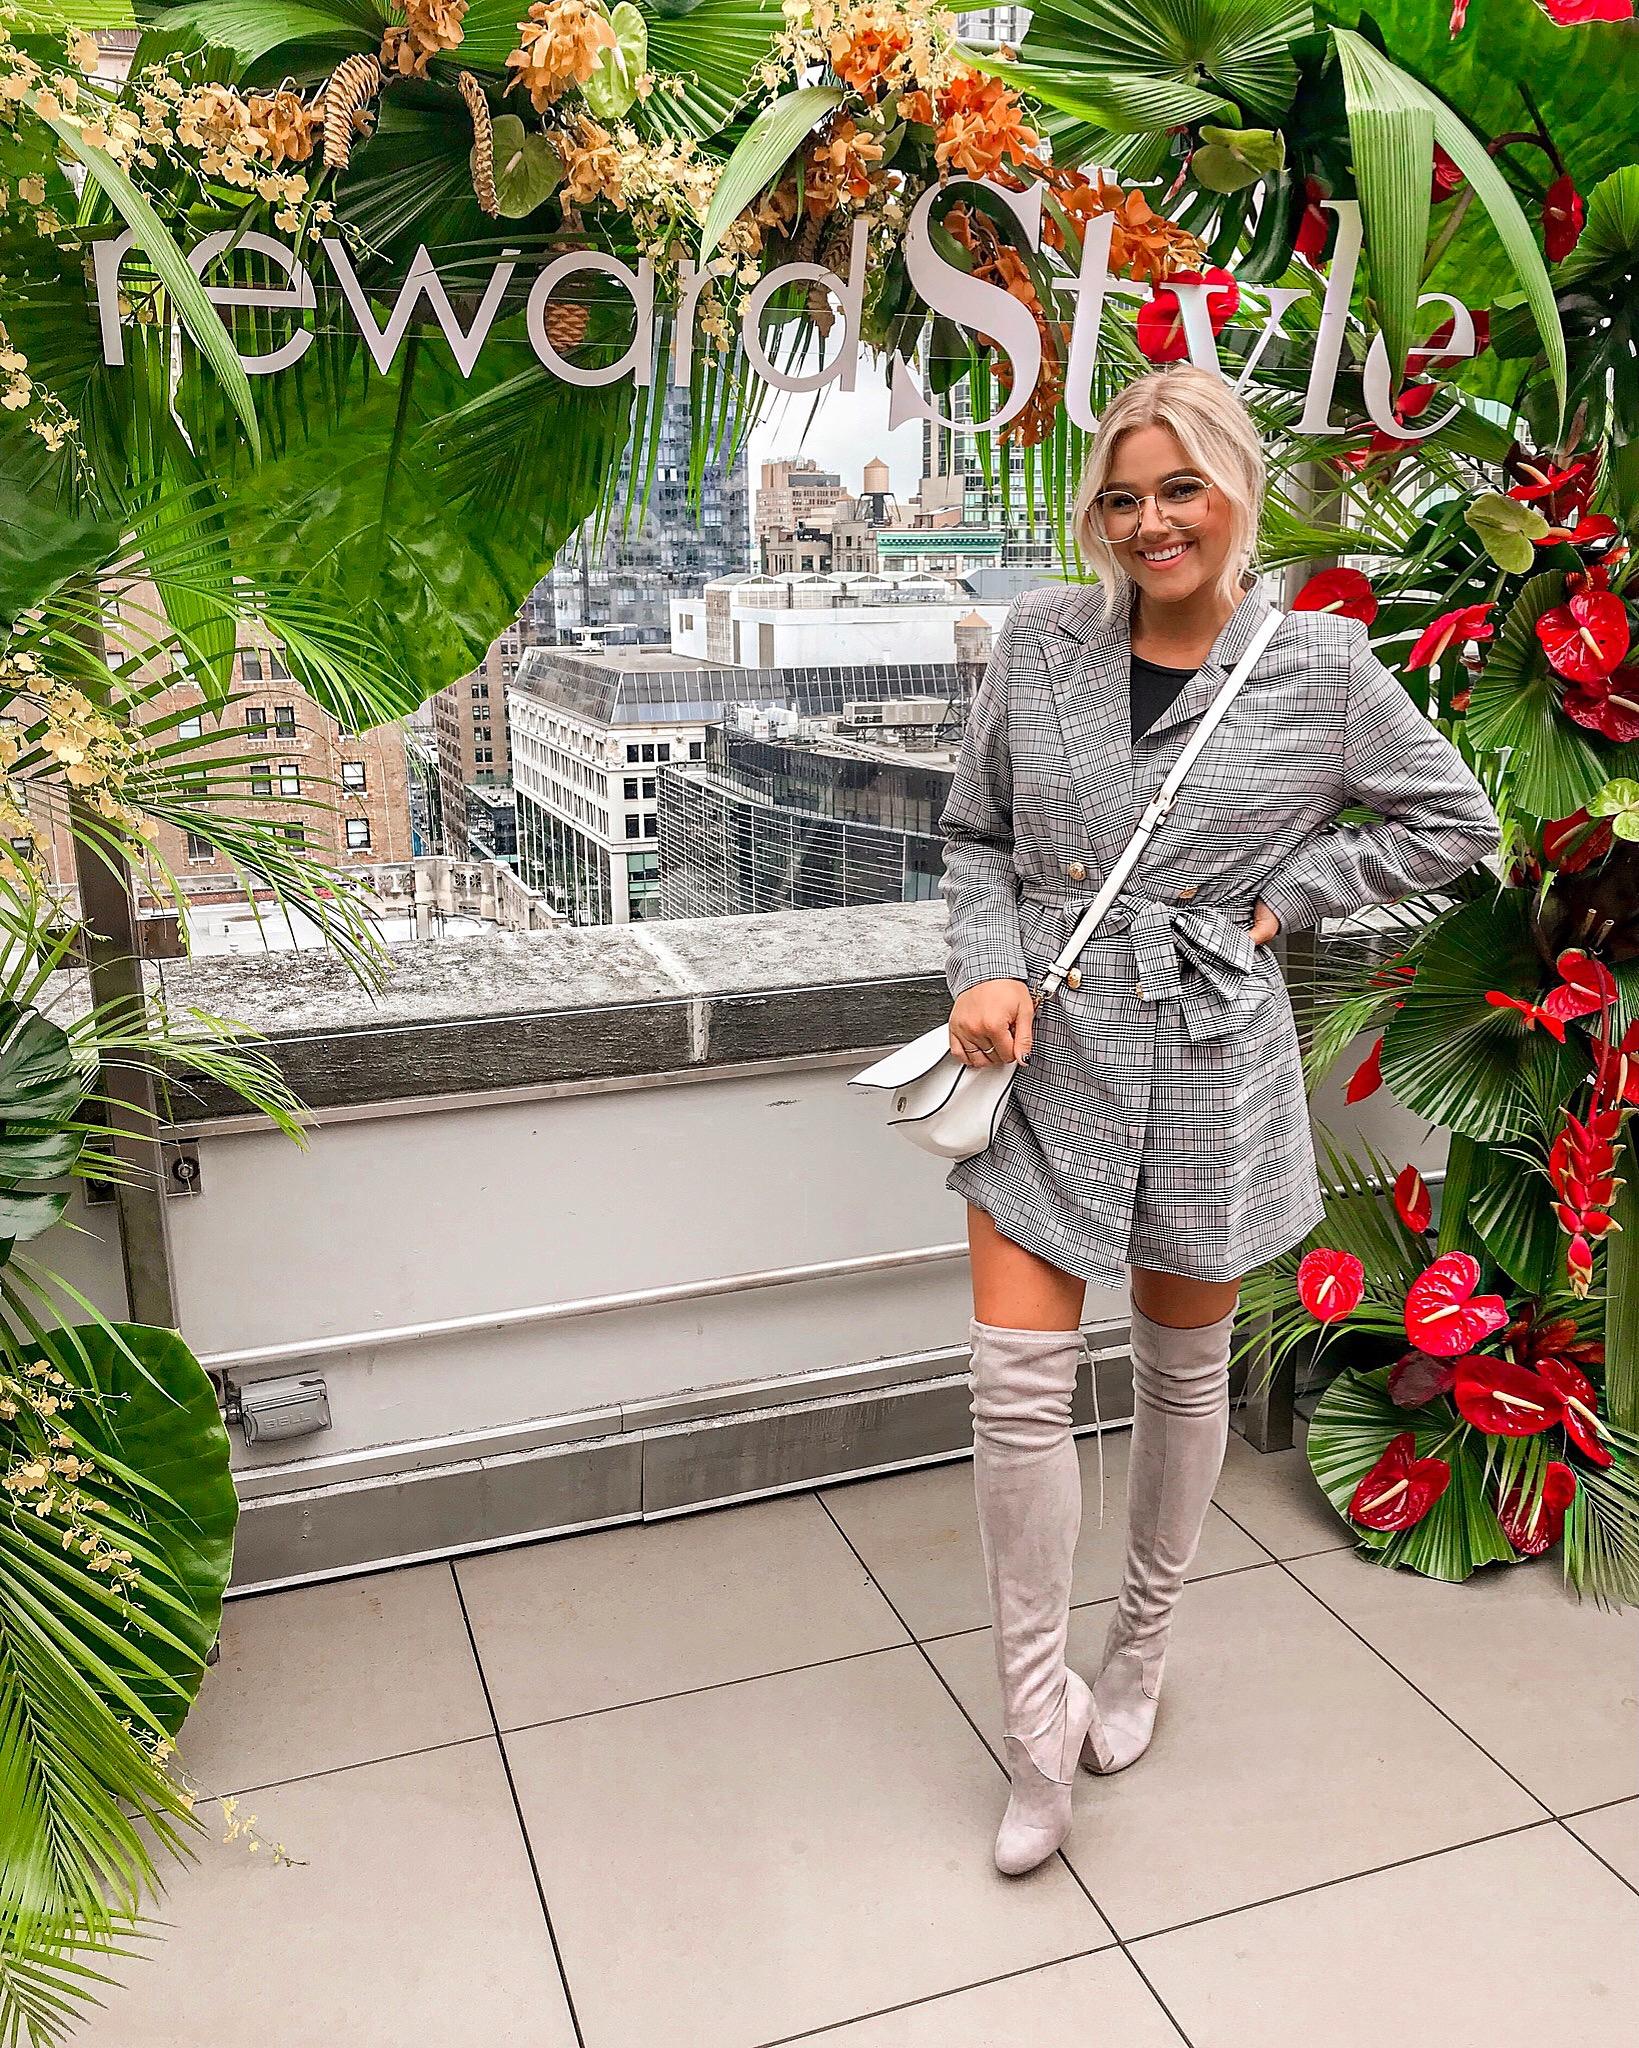 Bre Sheppard - My First NYFW - Suitjacket Dress Reward Style Party.JPG